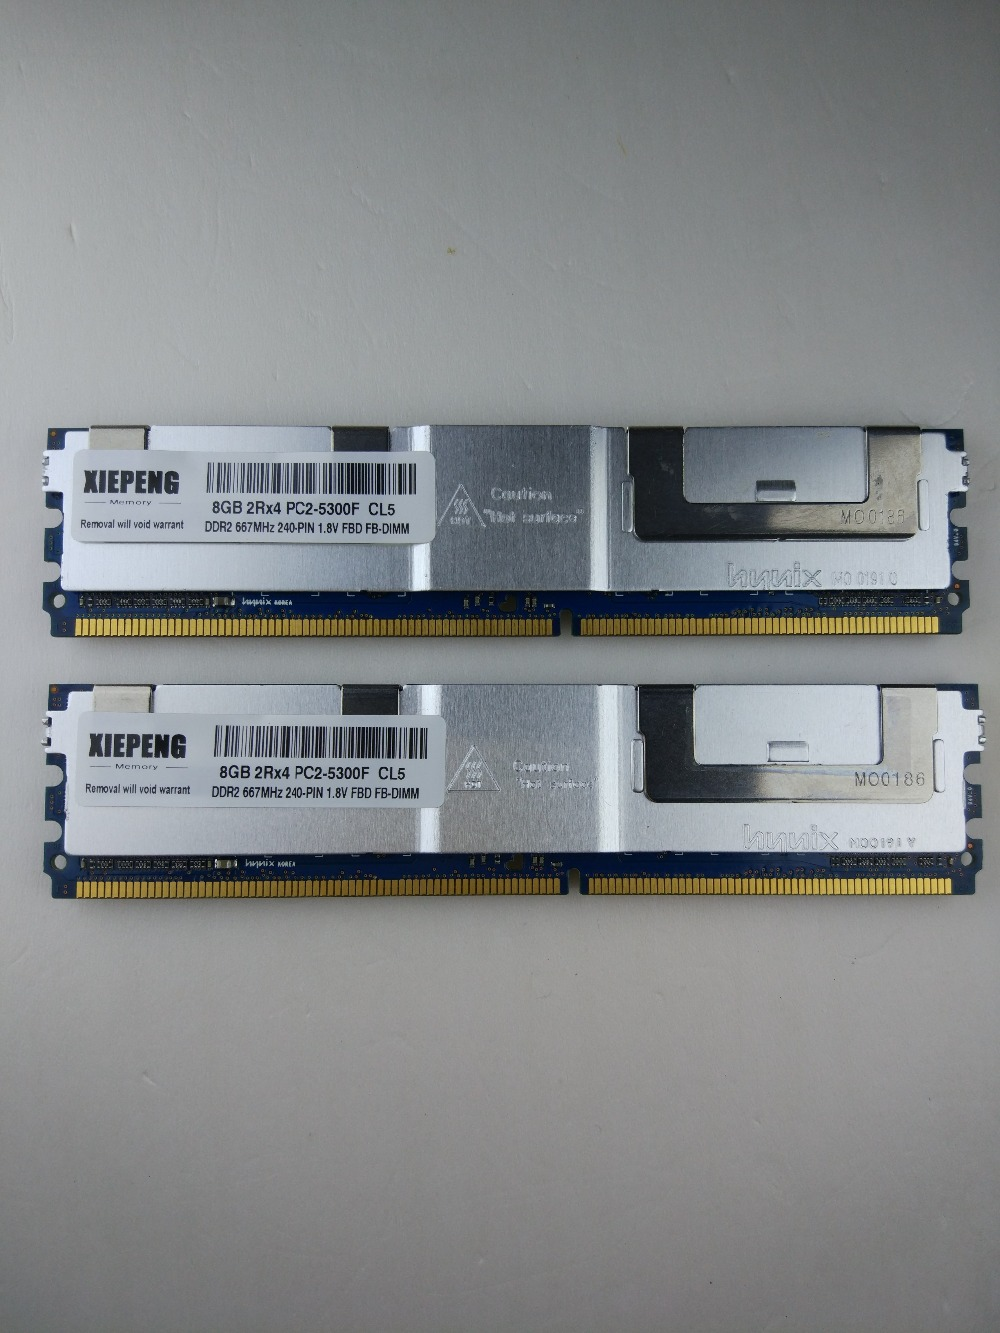 Memory 16GB ( 2x 8GB ) <font><b>DDR2</b></font> ECC FBD Fully Buffered RAM <font><b>4GB</b></font> <font><b>667MHz</b></font> FB-DIMM 8GB 2Rx4 PC2-5300F for Dell PowerEdge 1950 M600 M1000e image